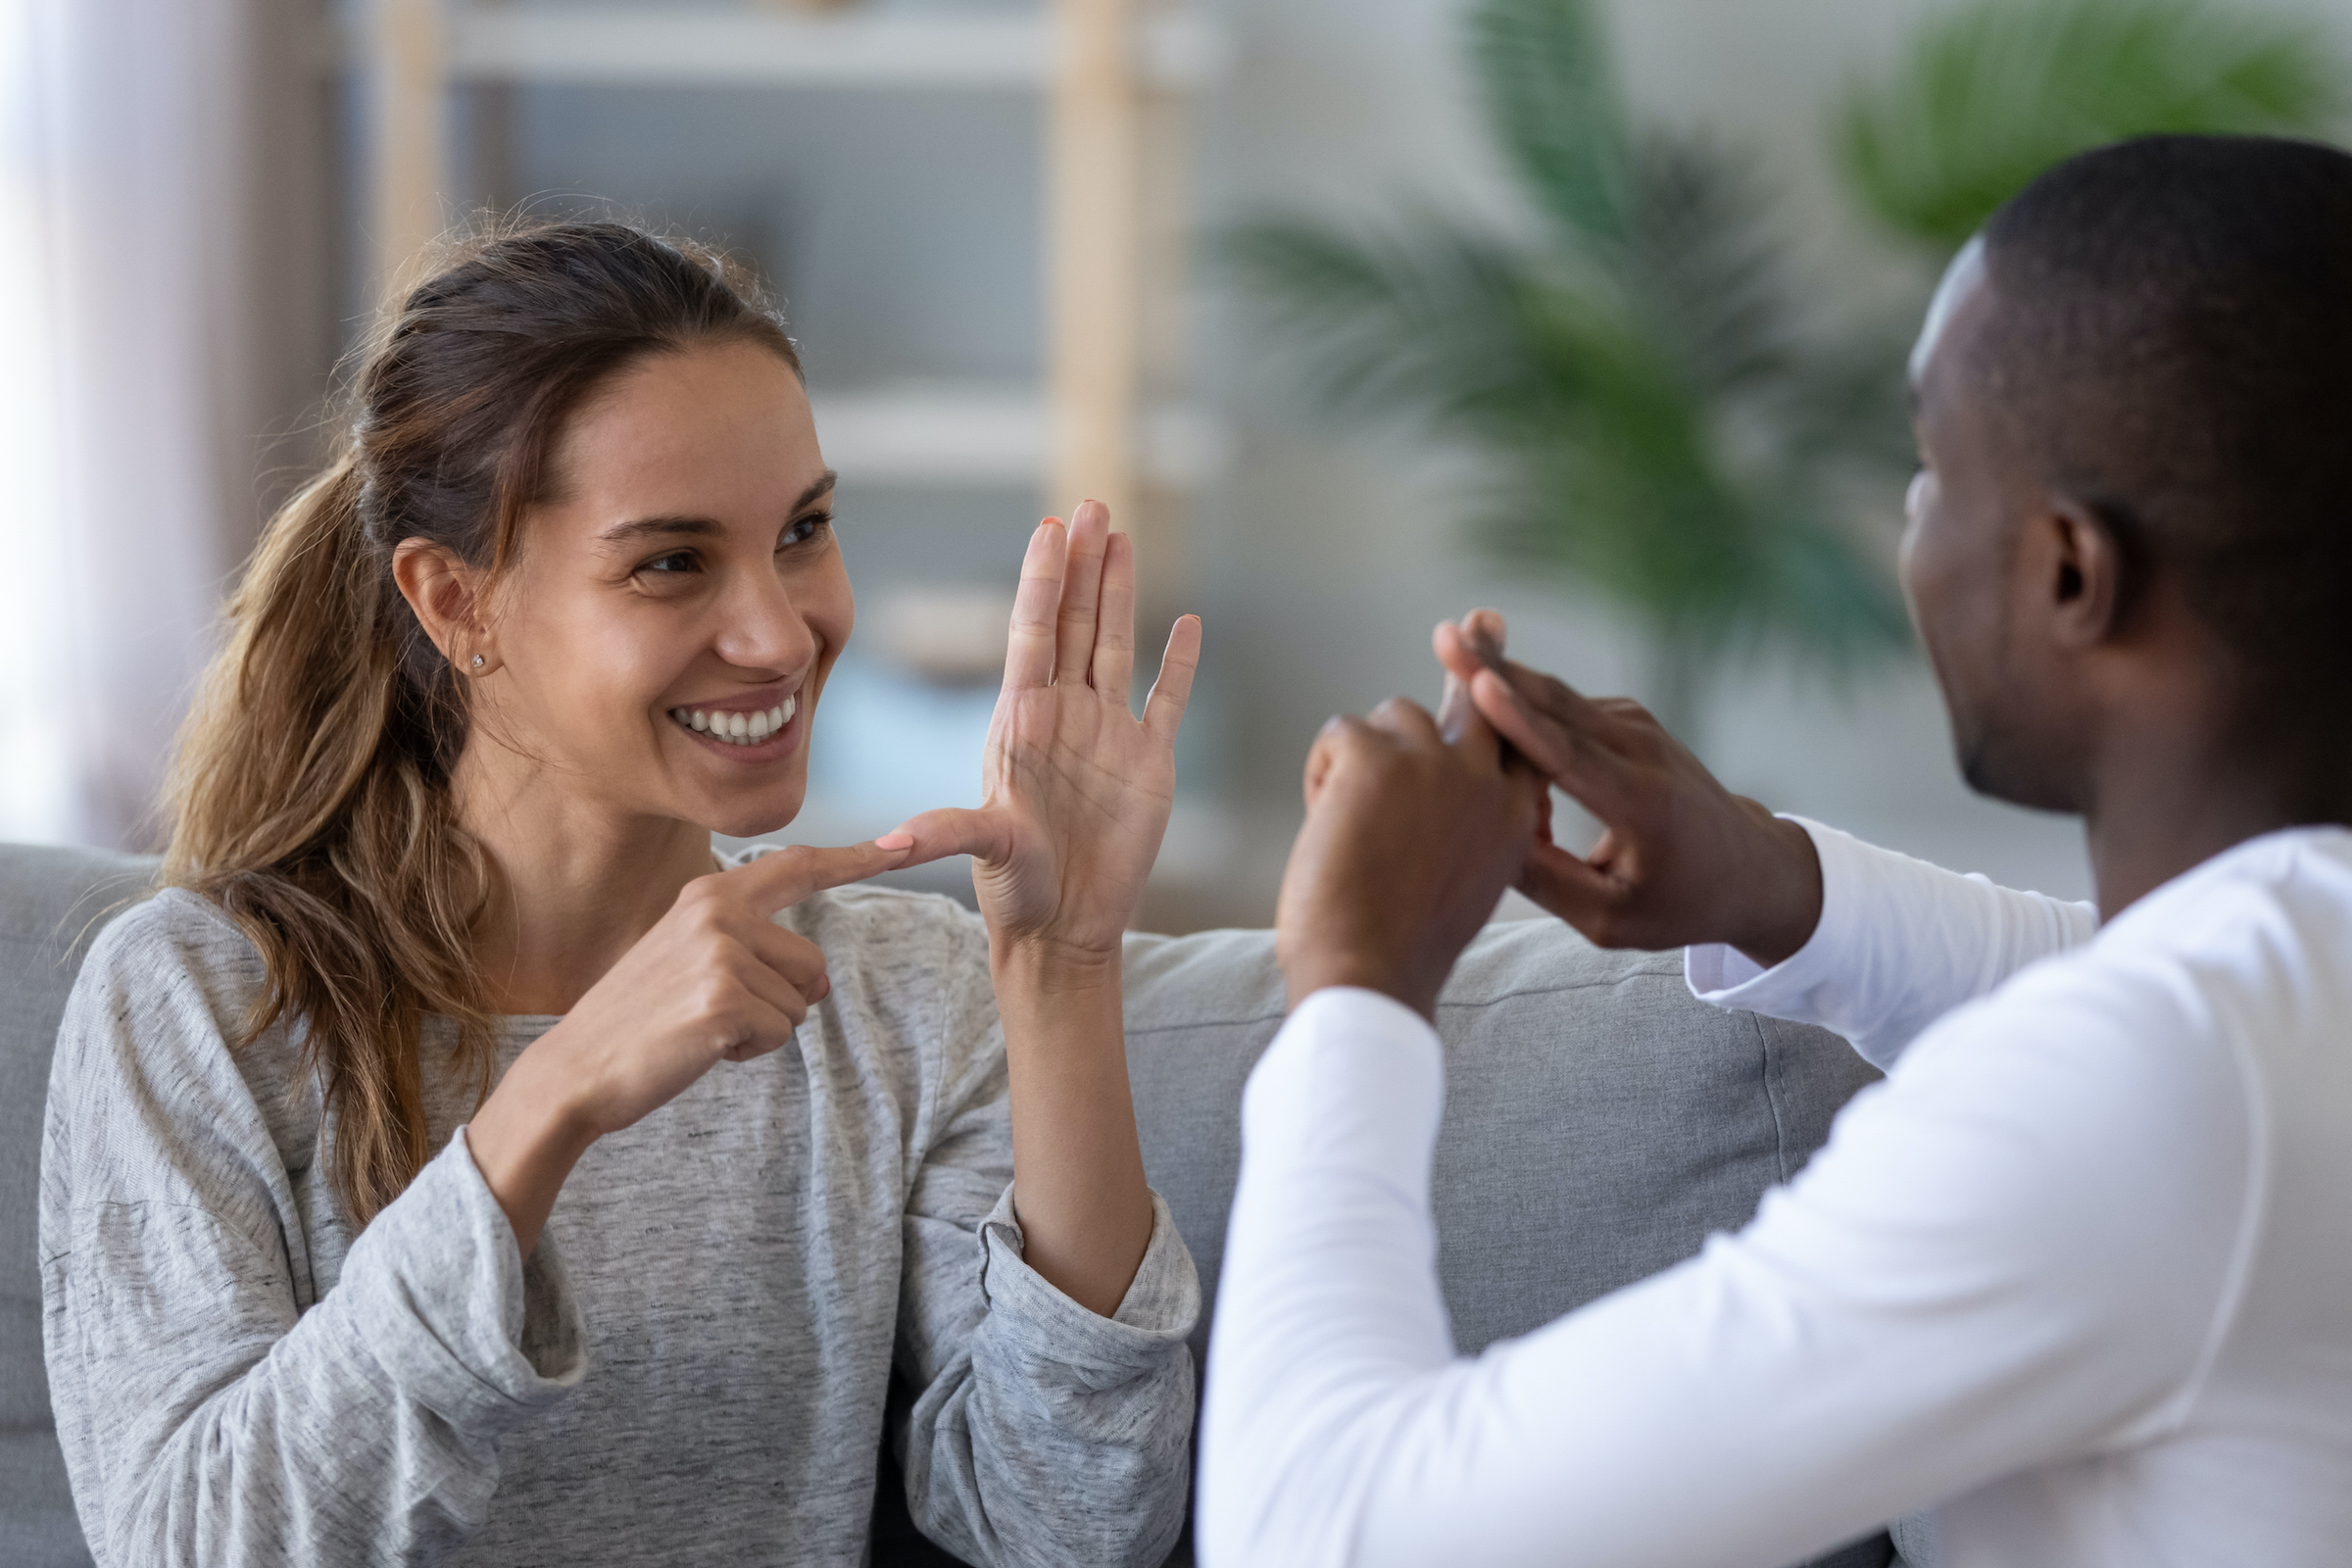 A young white woman and a young black man sit facing each other using American sign language.